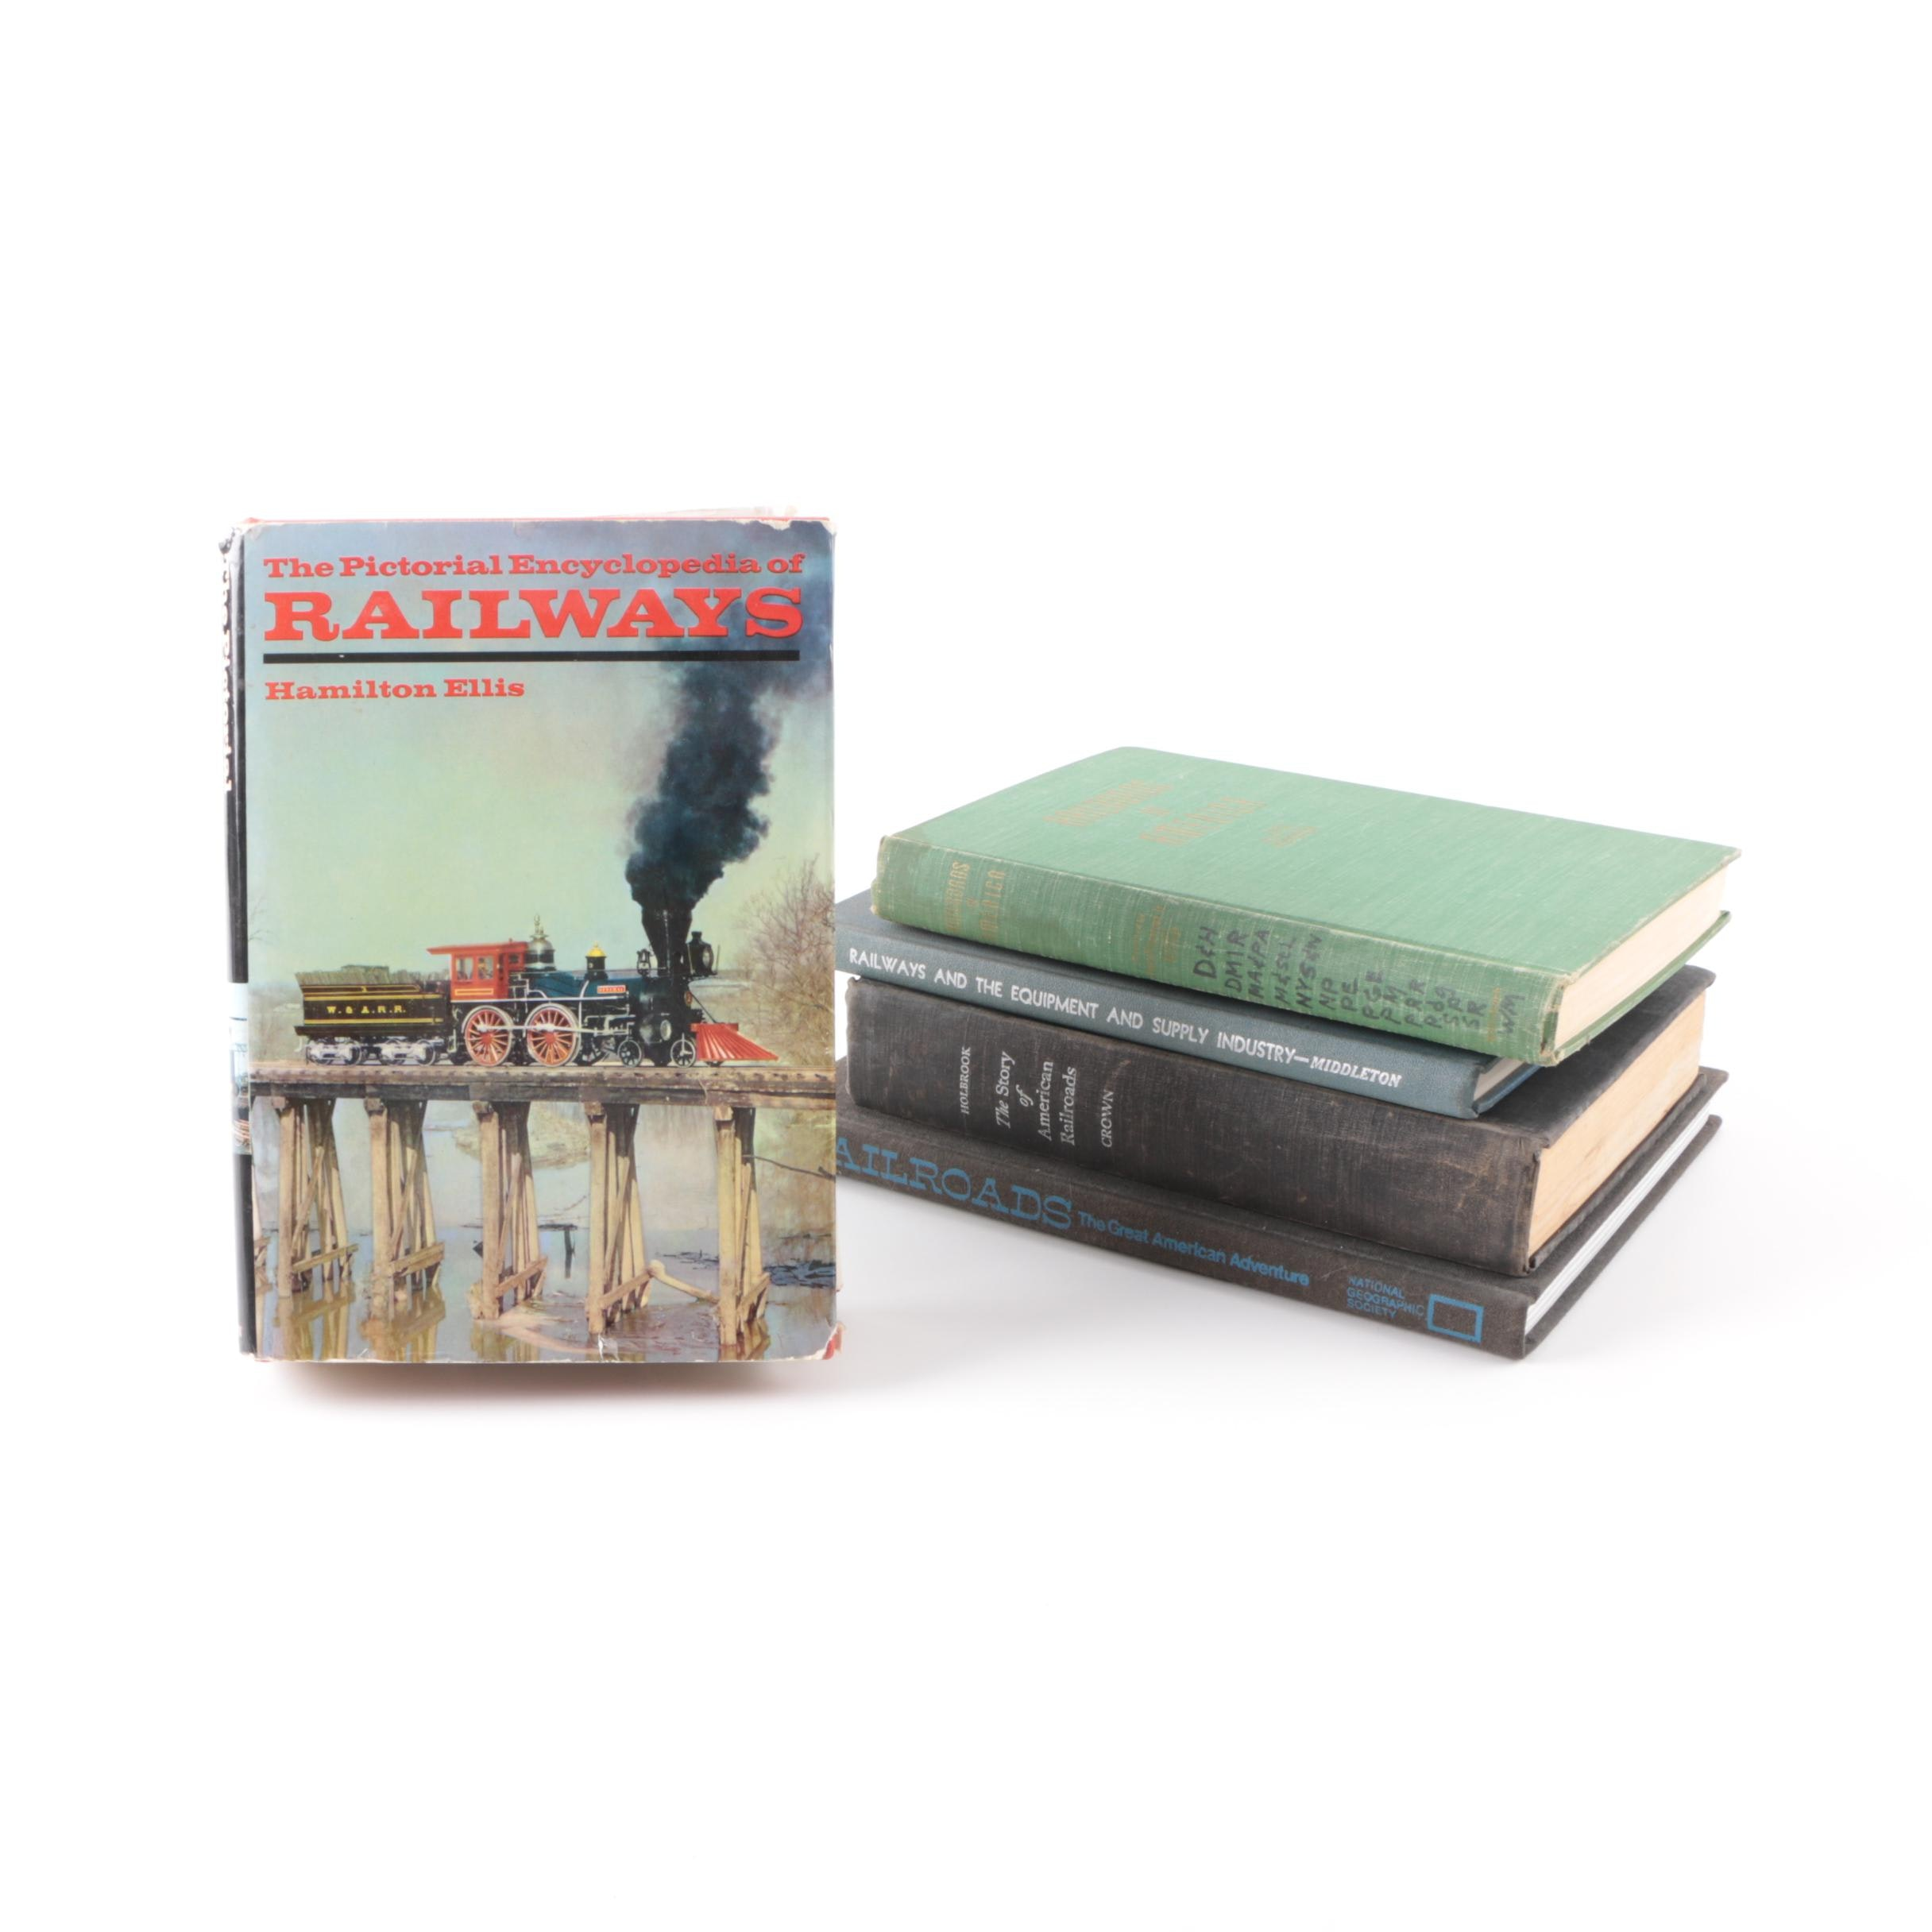 Books on American Railways featuring National Geographic Society